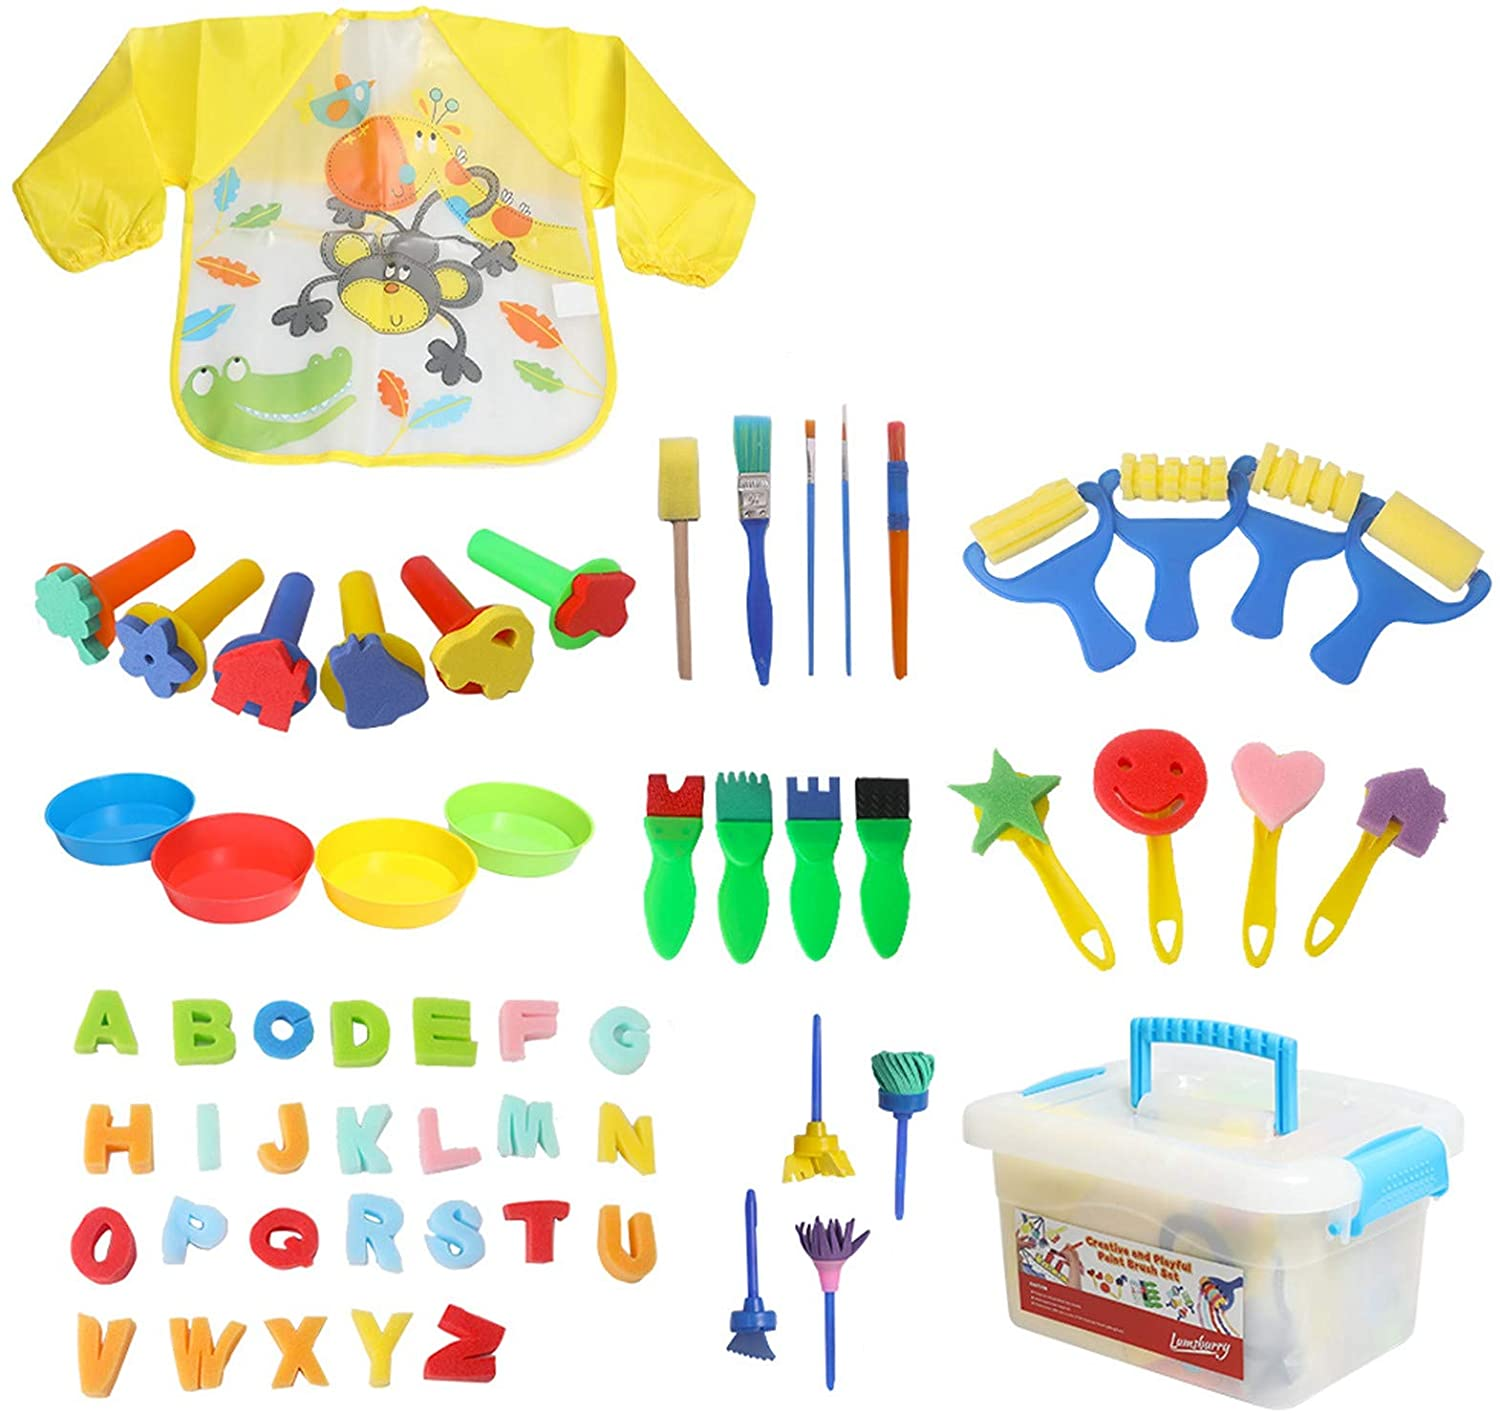 Lumsburry 59pcs Kids Art & Craft Early Learning Painting Sponges Stamper Mini Paint Brushes Kit with 26 English Alphabets Drawing Tools (with Apron&Box)